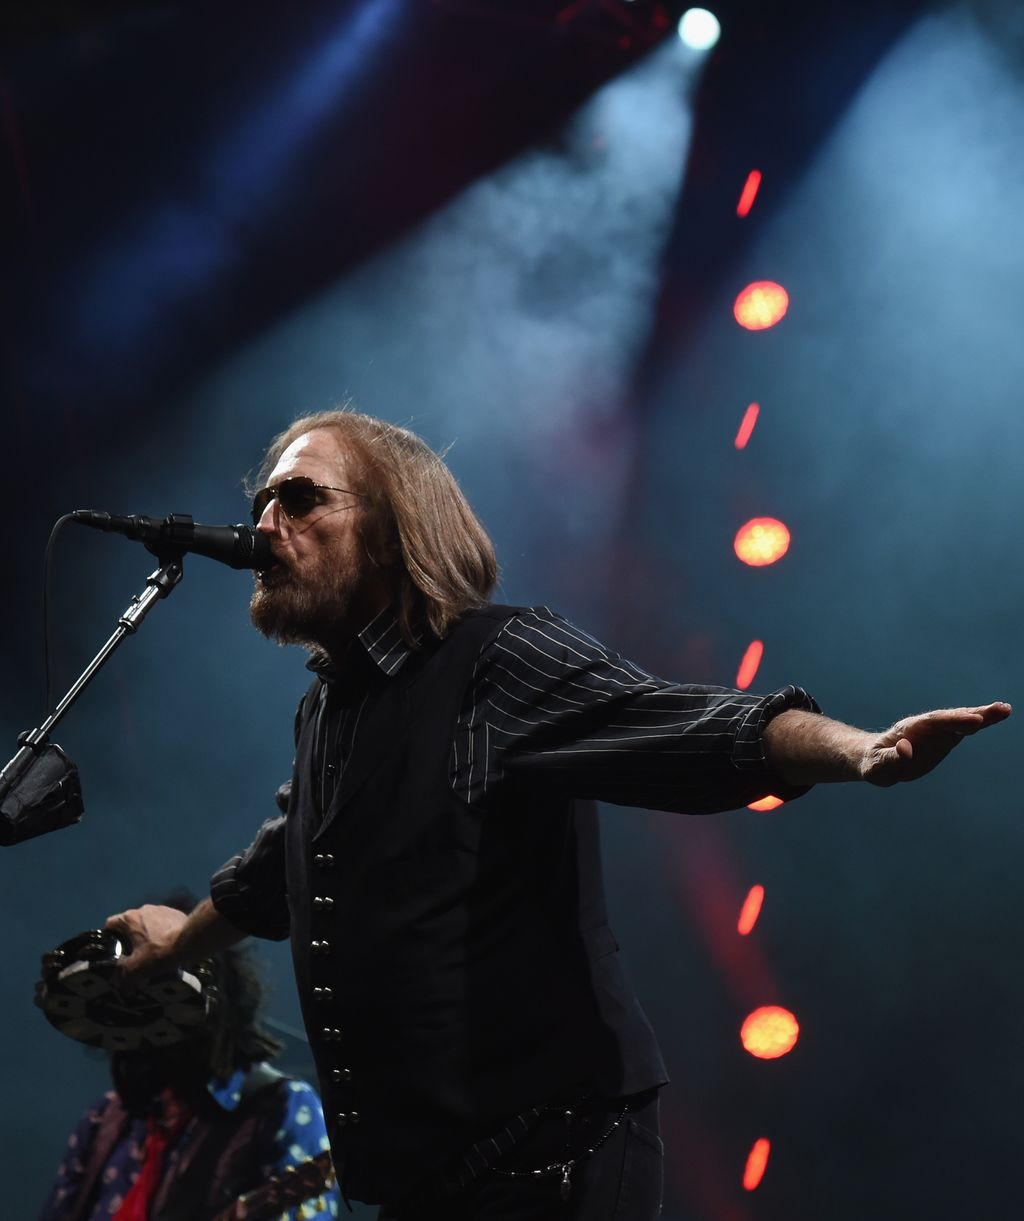 NASHVILLE, TN - APRIL 25:  Tom Petty of Tom Petty and the Heartbreakers performs during their 40th Anniversary Tour at Bridgestone Arena on April 25, 2017 in Nashville, Tennessee.  (Photo by Rick Diamond/Getty Images for Sacks & Co)